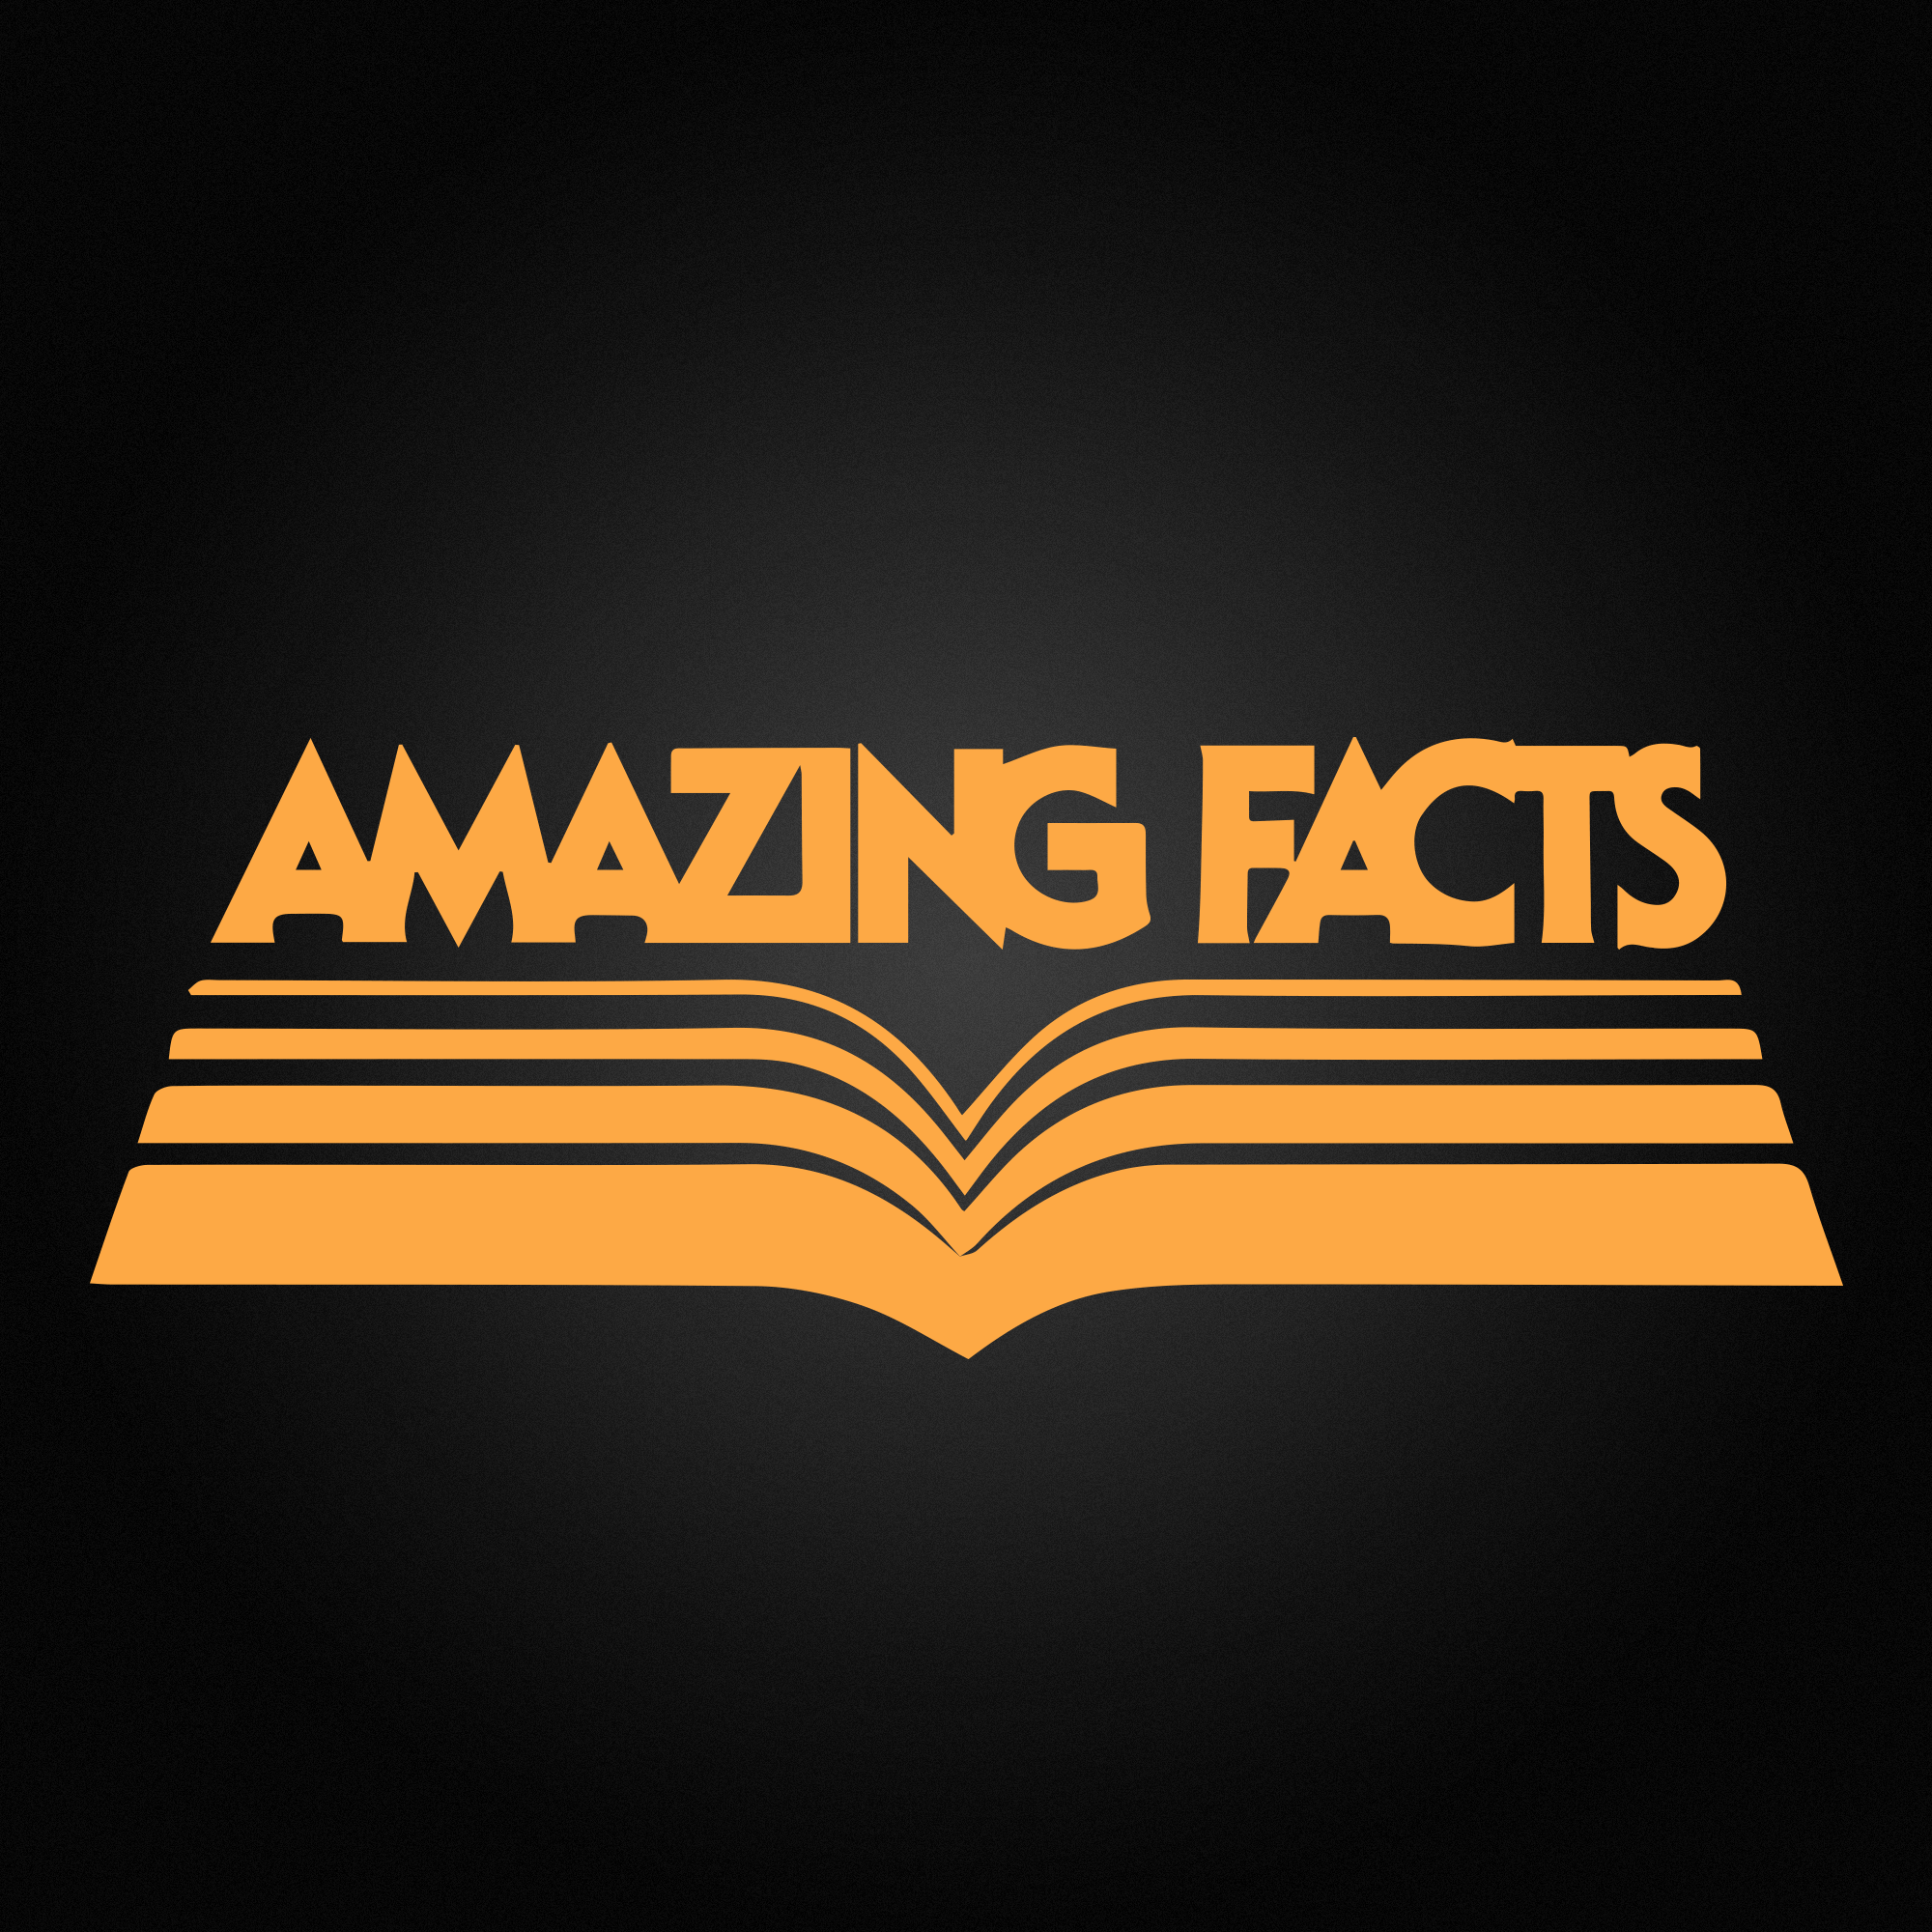 Amazing Facts video resources.